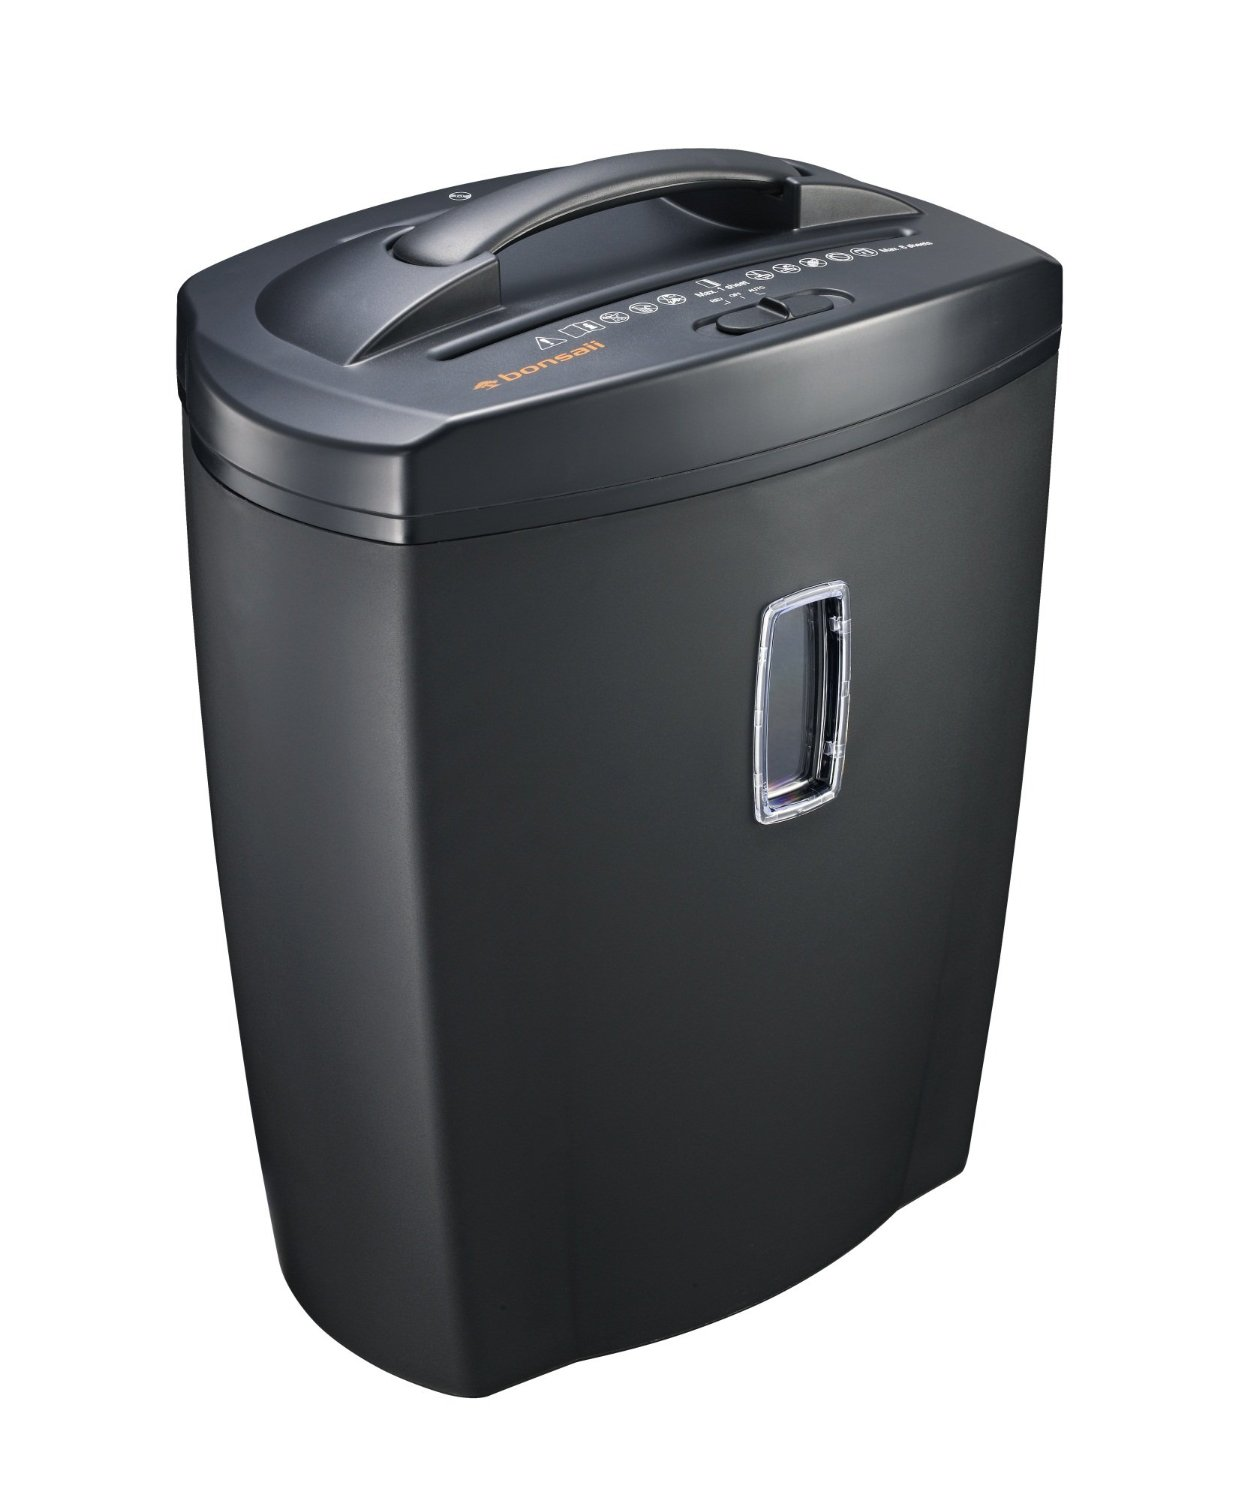 http://www.bestsorted.com/wordpress/wp-content/uploads/2016/05/bonsaii-docshred-c156-c-paper-shredder.jpg